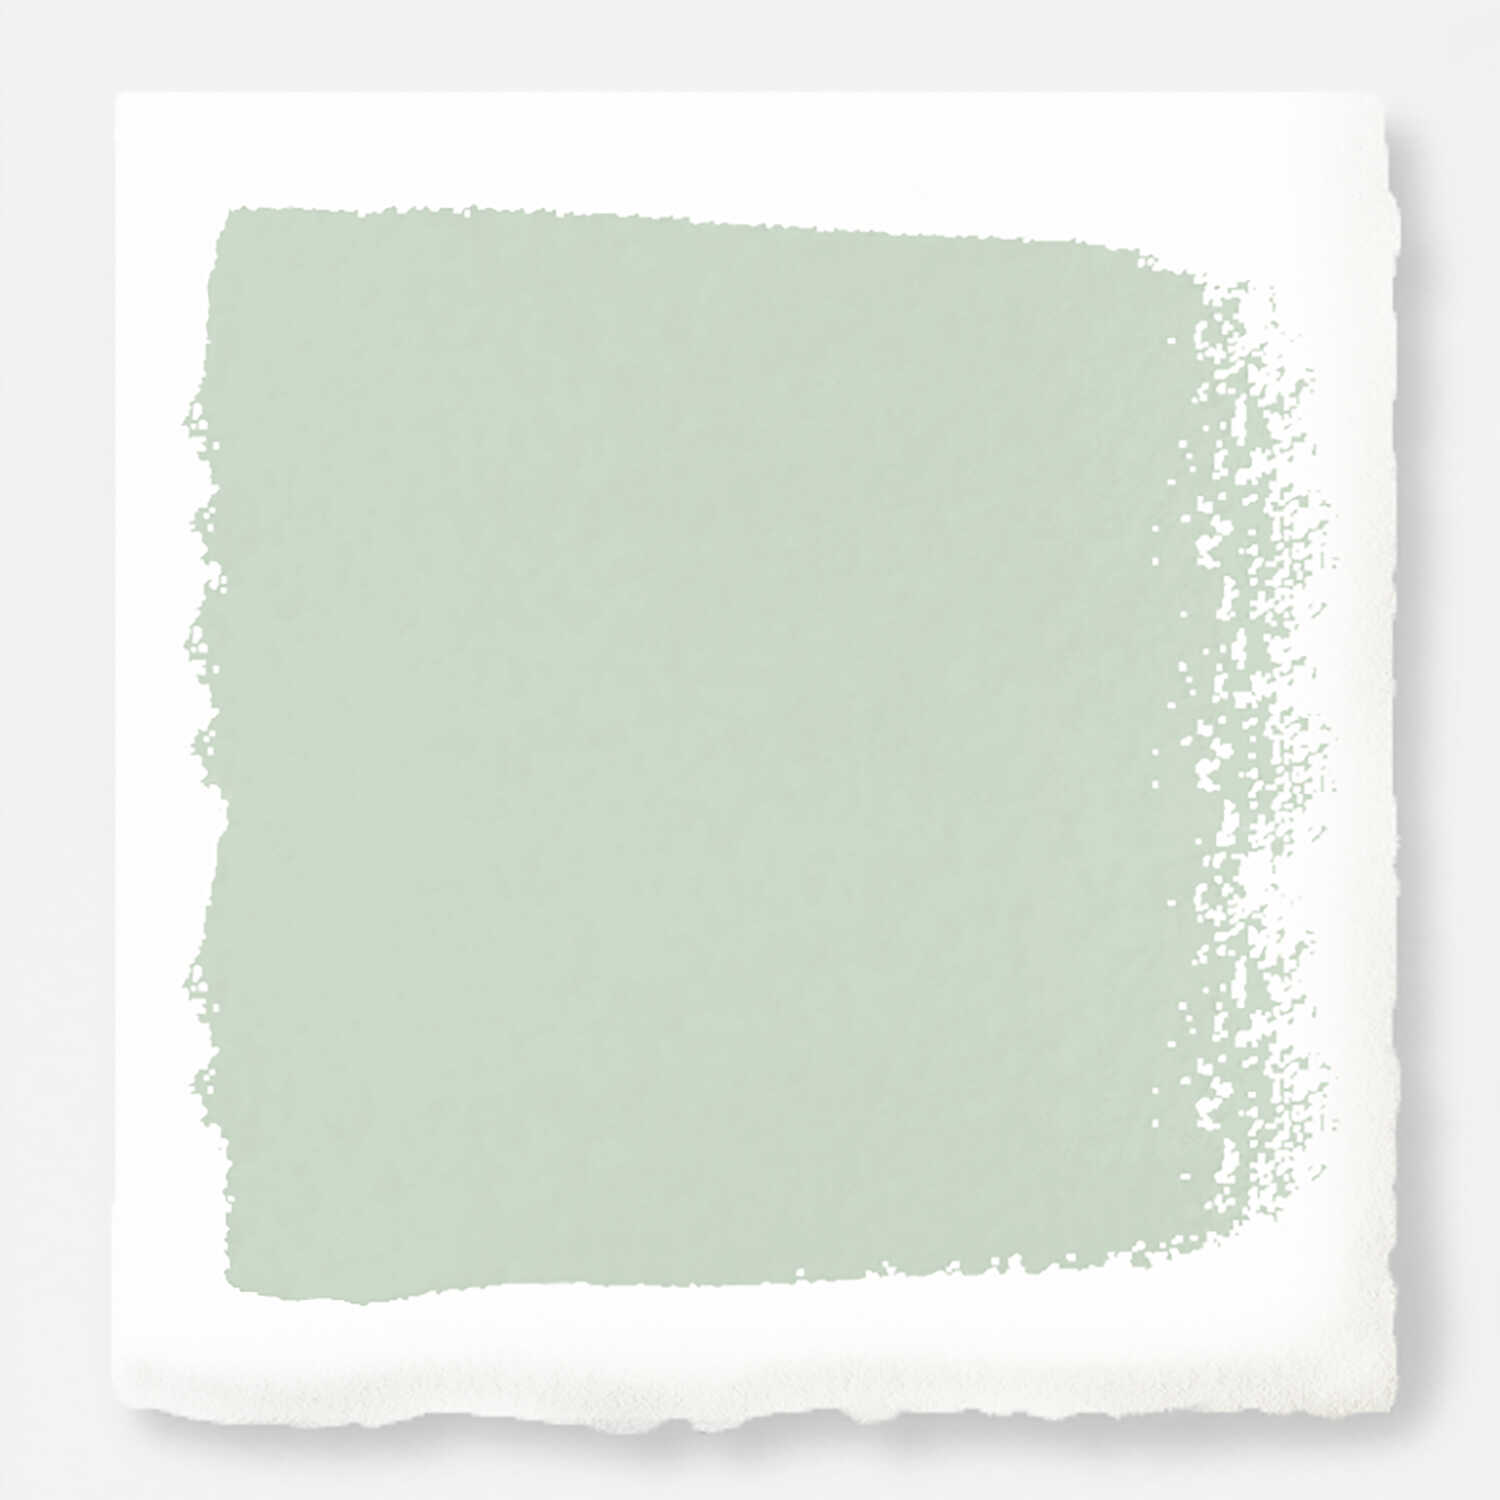 Magnolia Home  Flat  Mineral Green  Exterior Paint and Primer  1 gal.